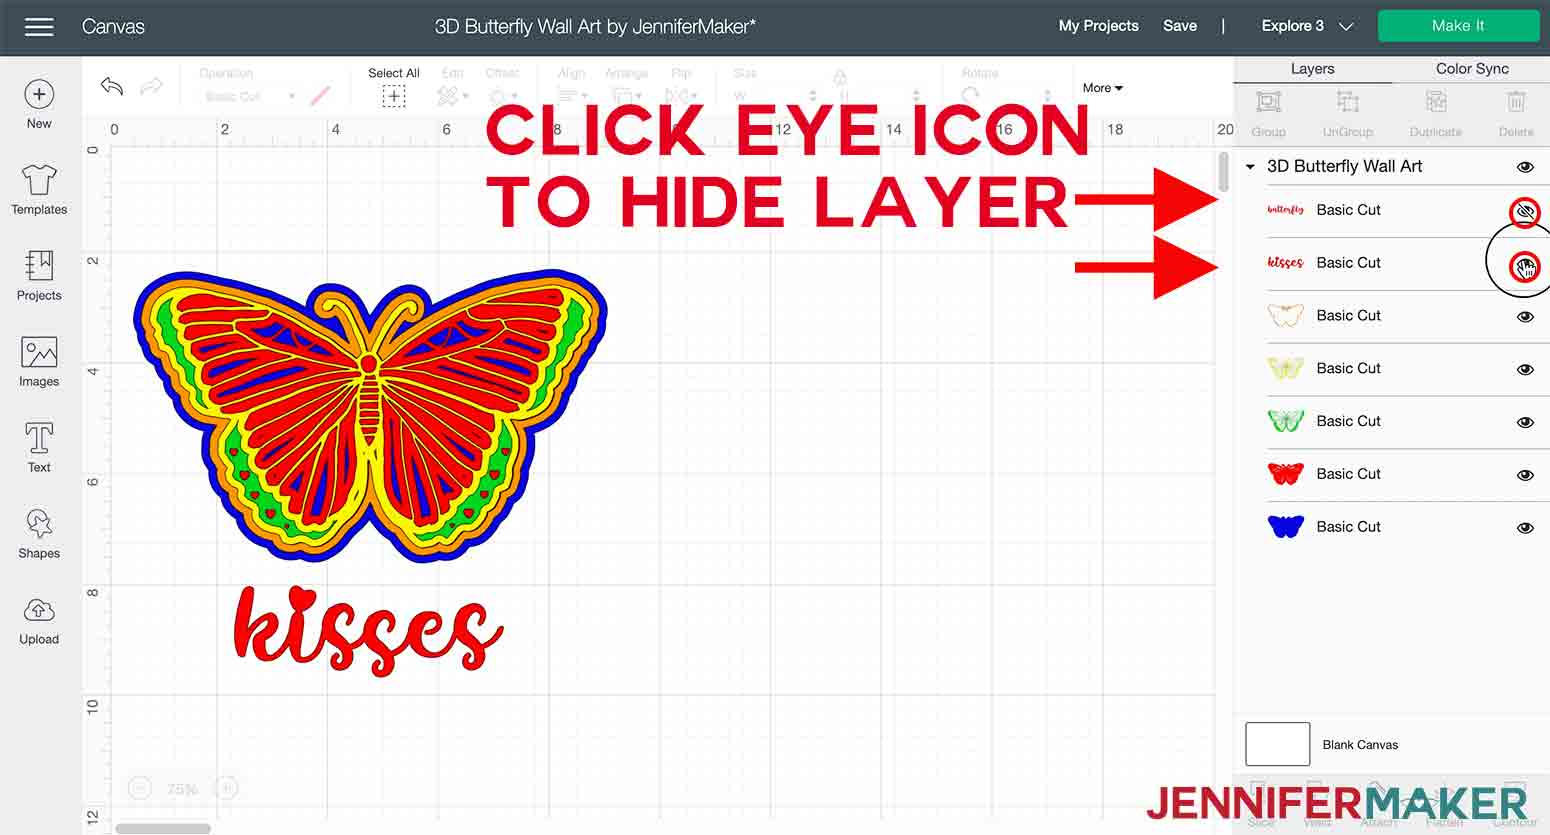 arrows pointing to eye icon to hide text in 3D butterfly wall art